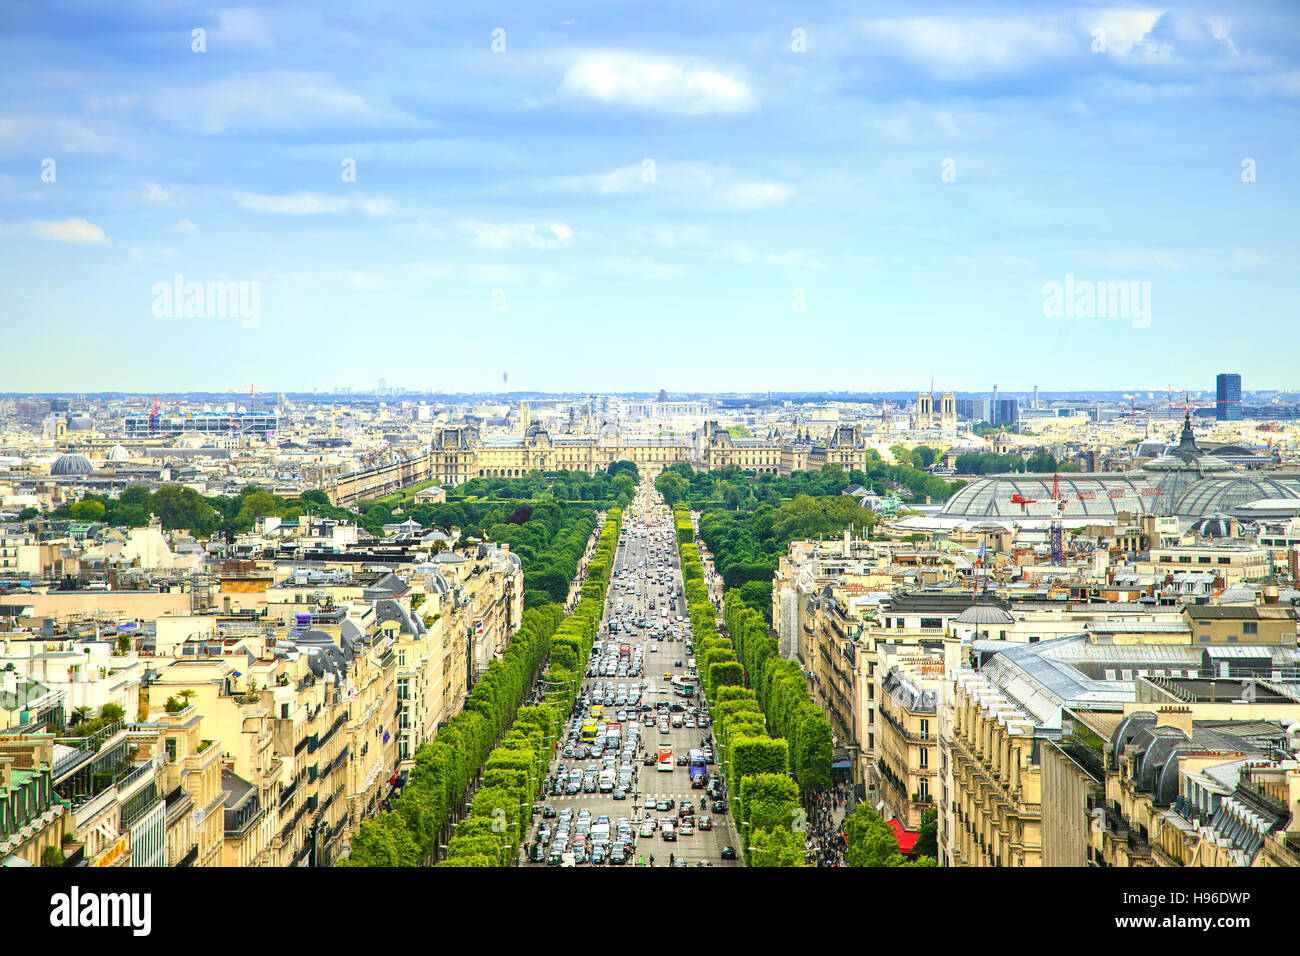 Paris, panoramic aerial view of Champs Elysees boulevard. France, Europe. - Stock Image